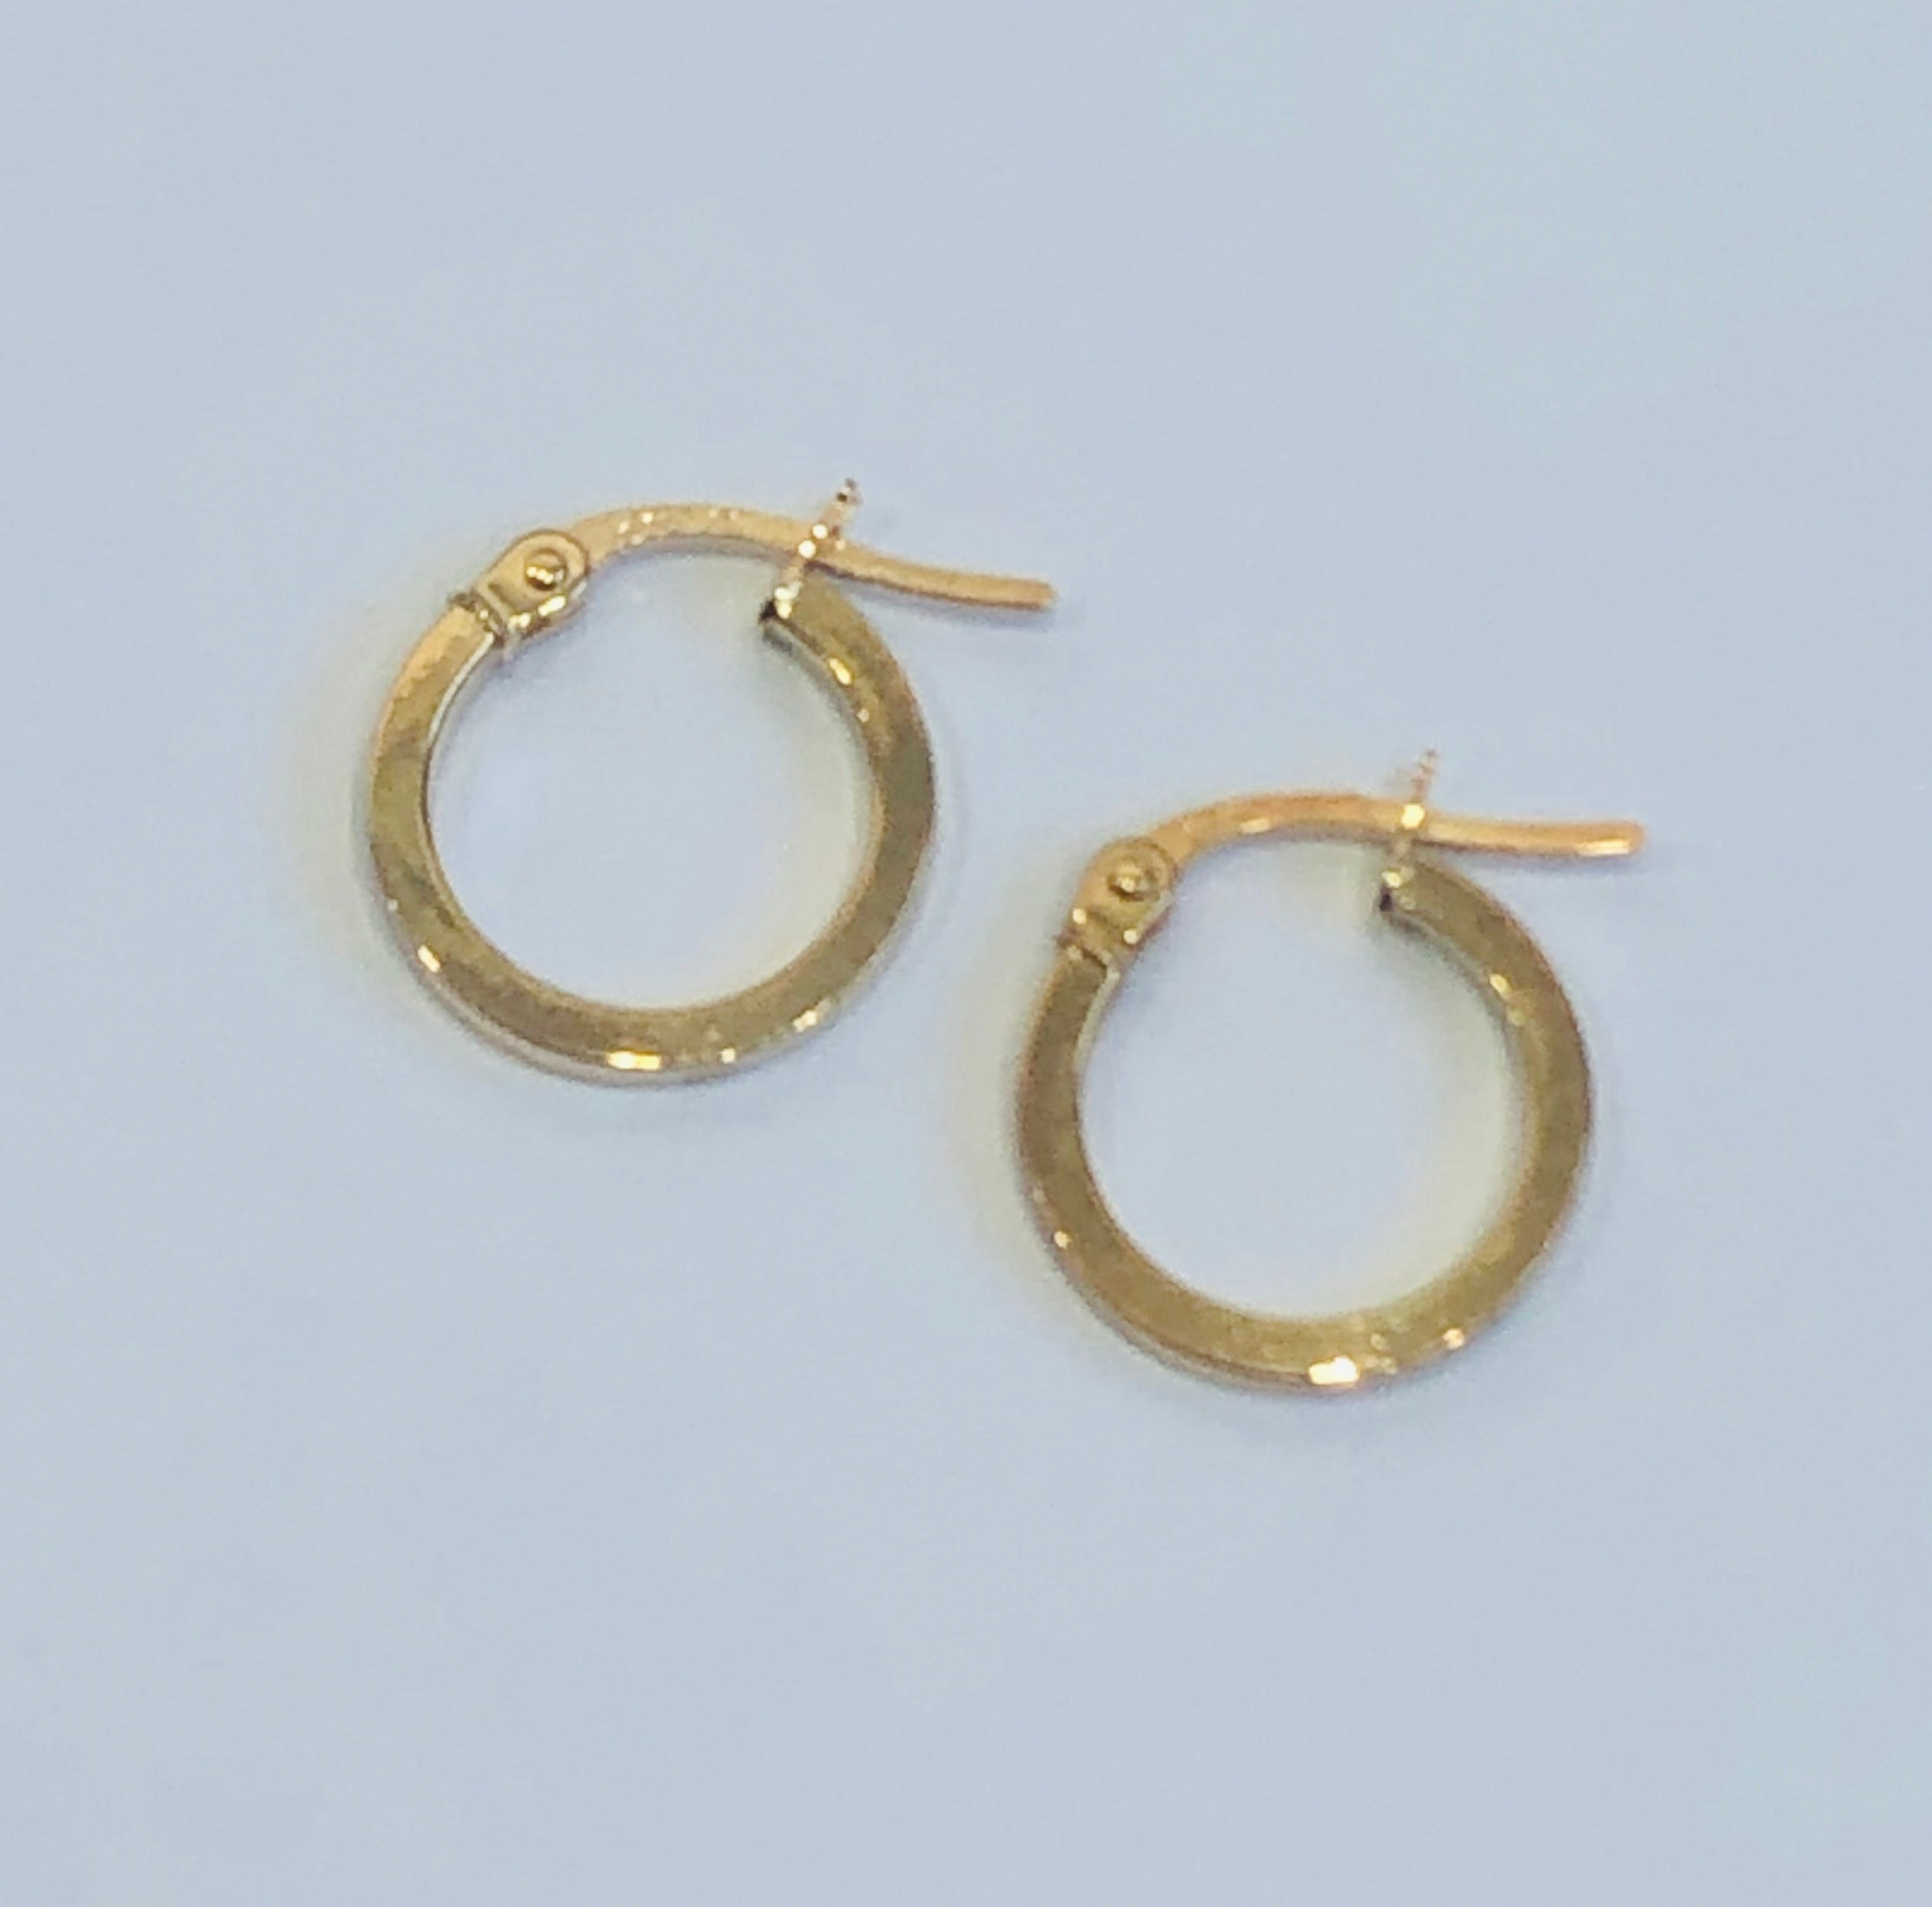 9ct Gold Square Wire Polished Hoop Earrings 9mm x 1.5mm - 004